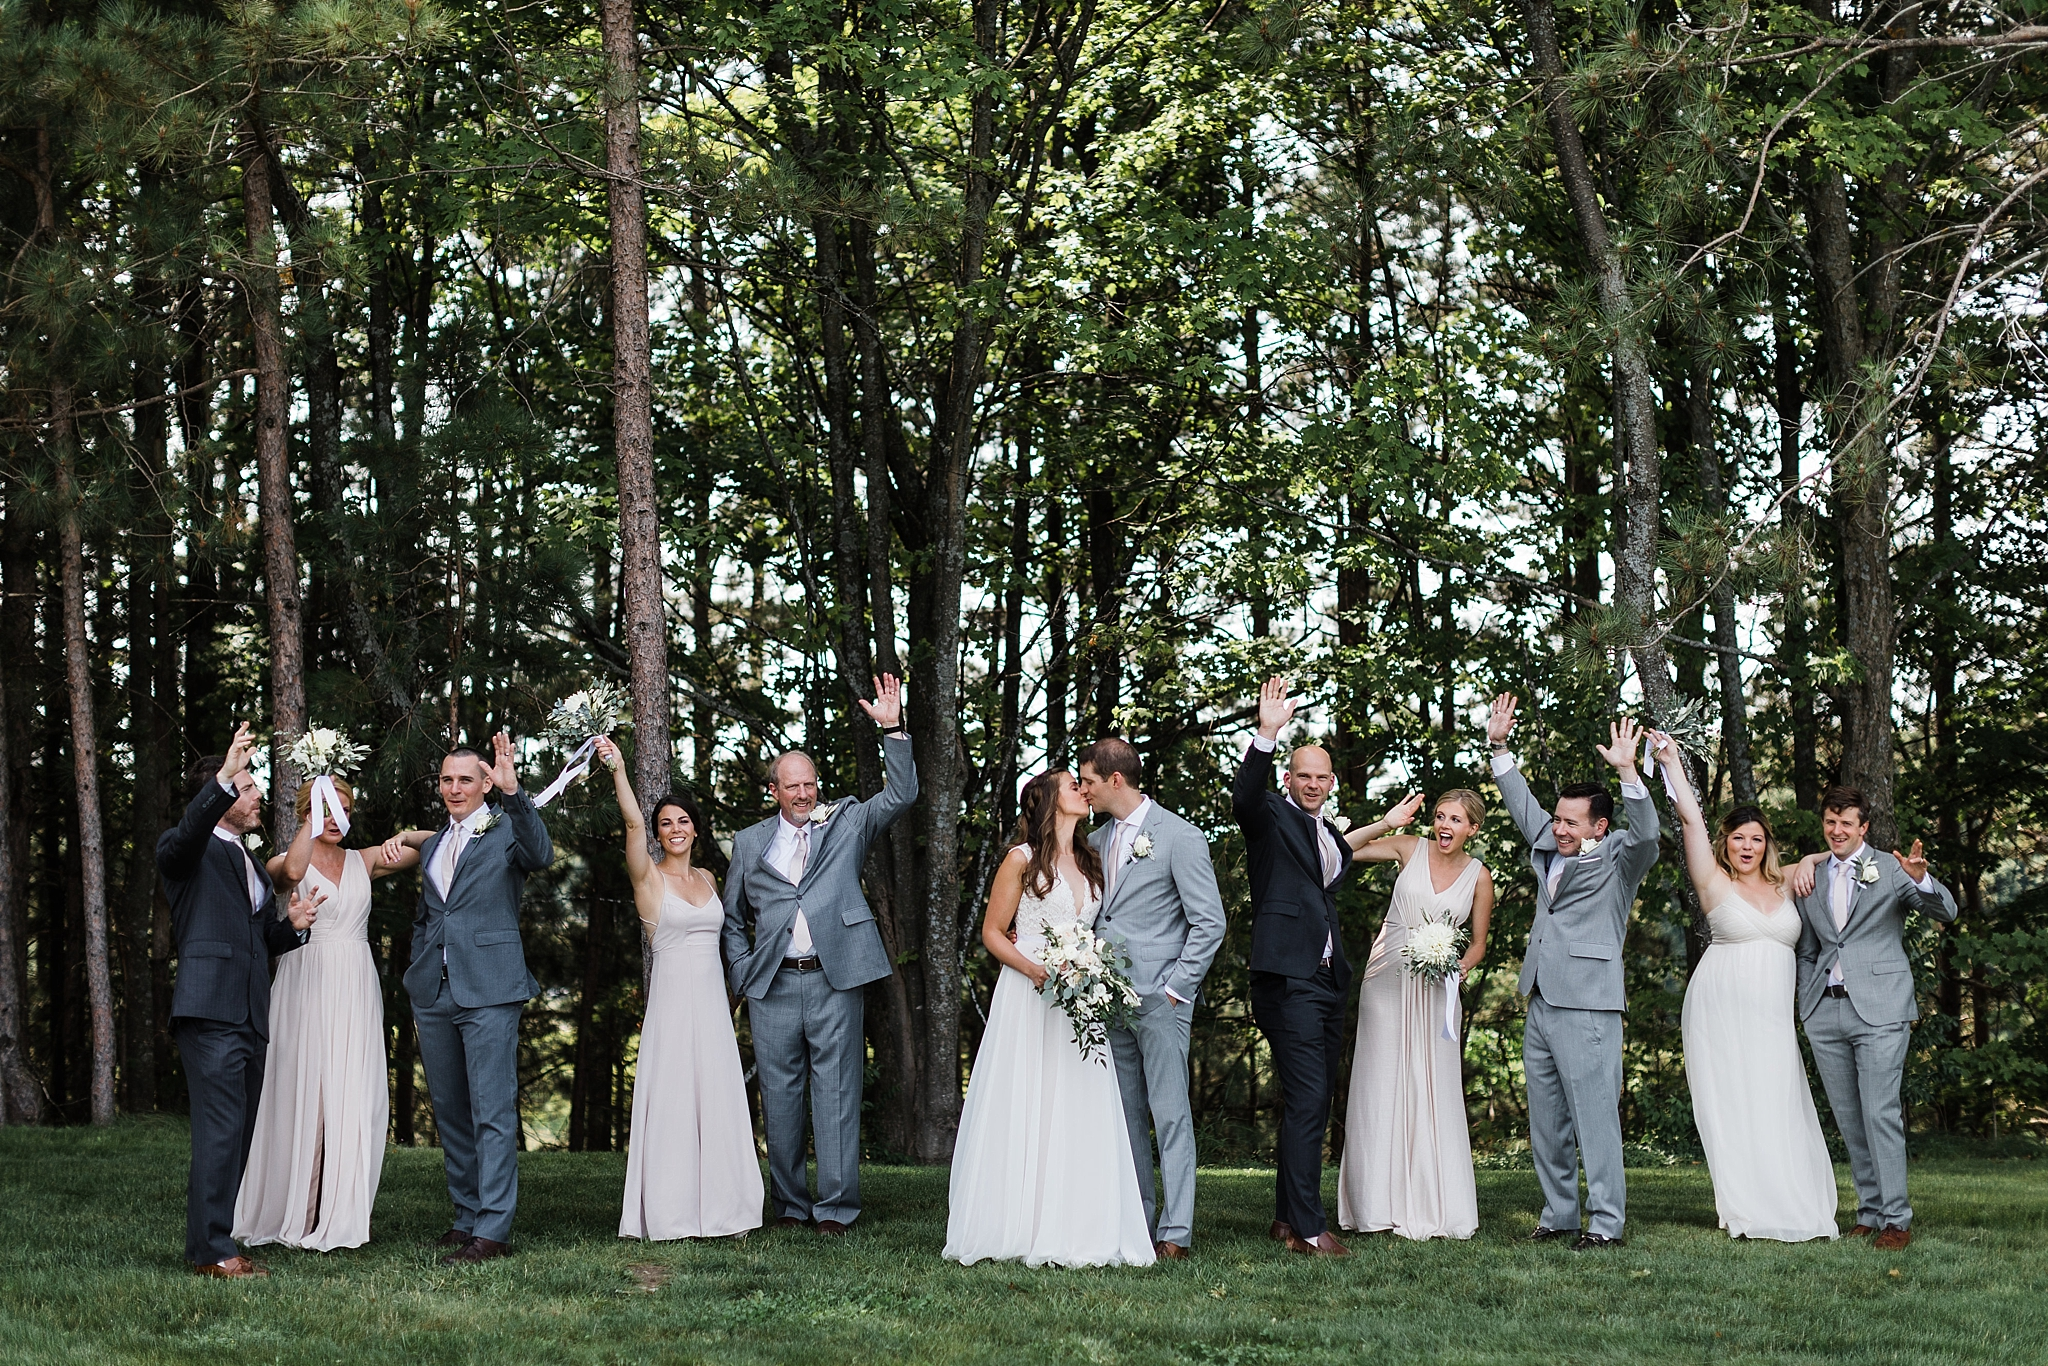 Verterra Vineyards Wedding, Traverse City Michigan photographer Rockhill Studio